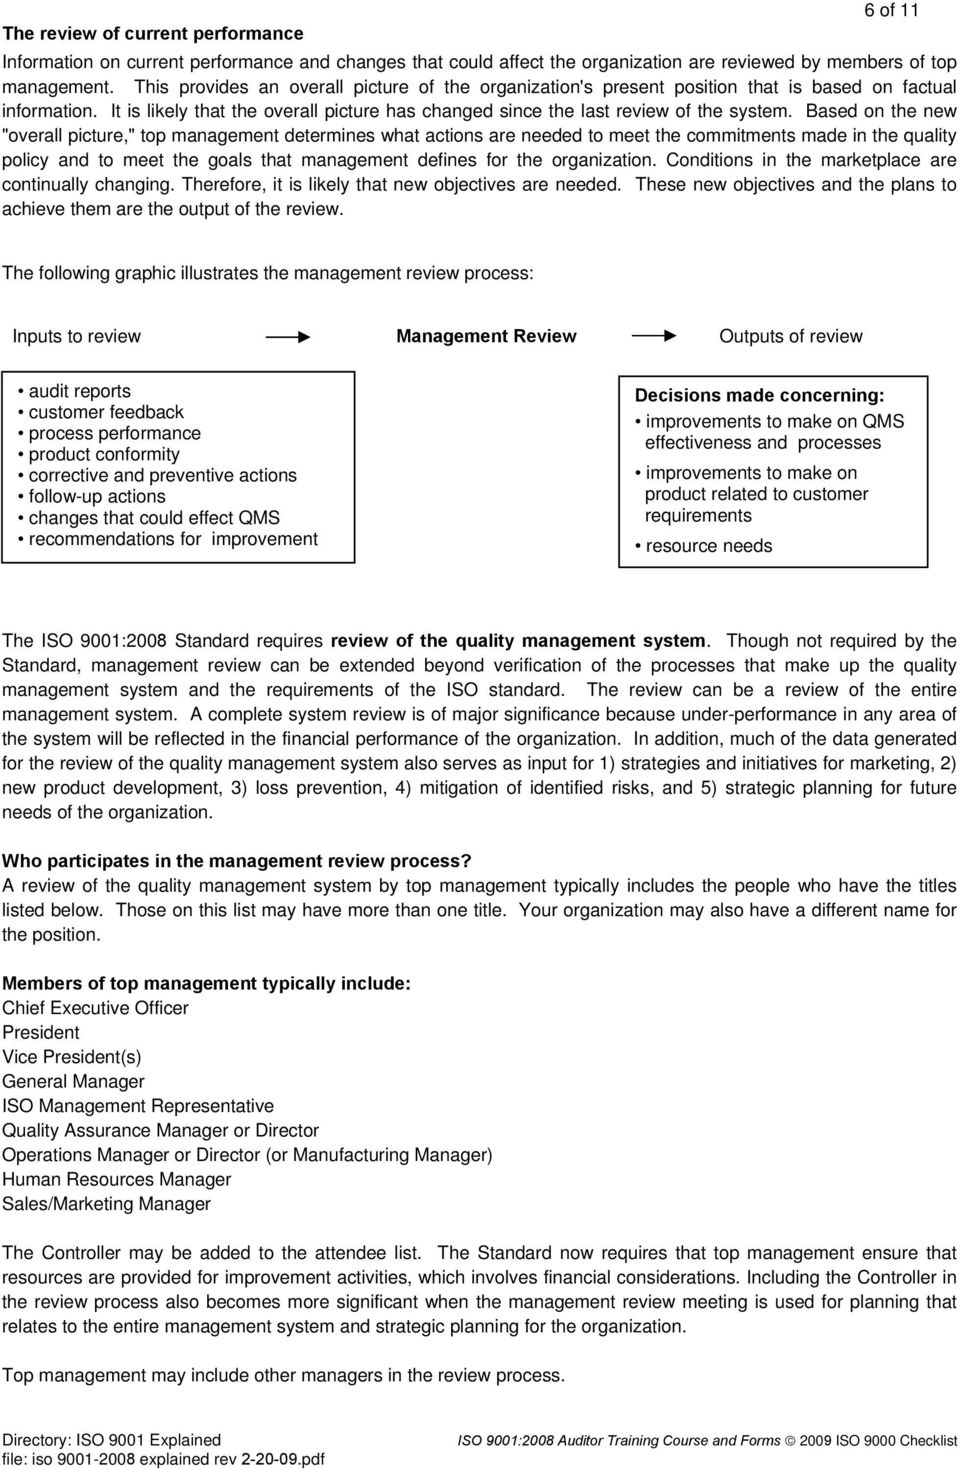 ISO 9001:2008 Requirements Explained - An Adobe PDF File for